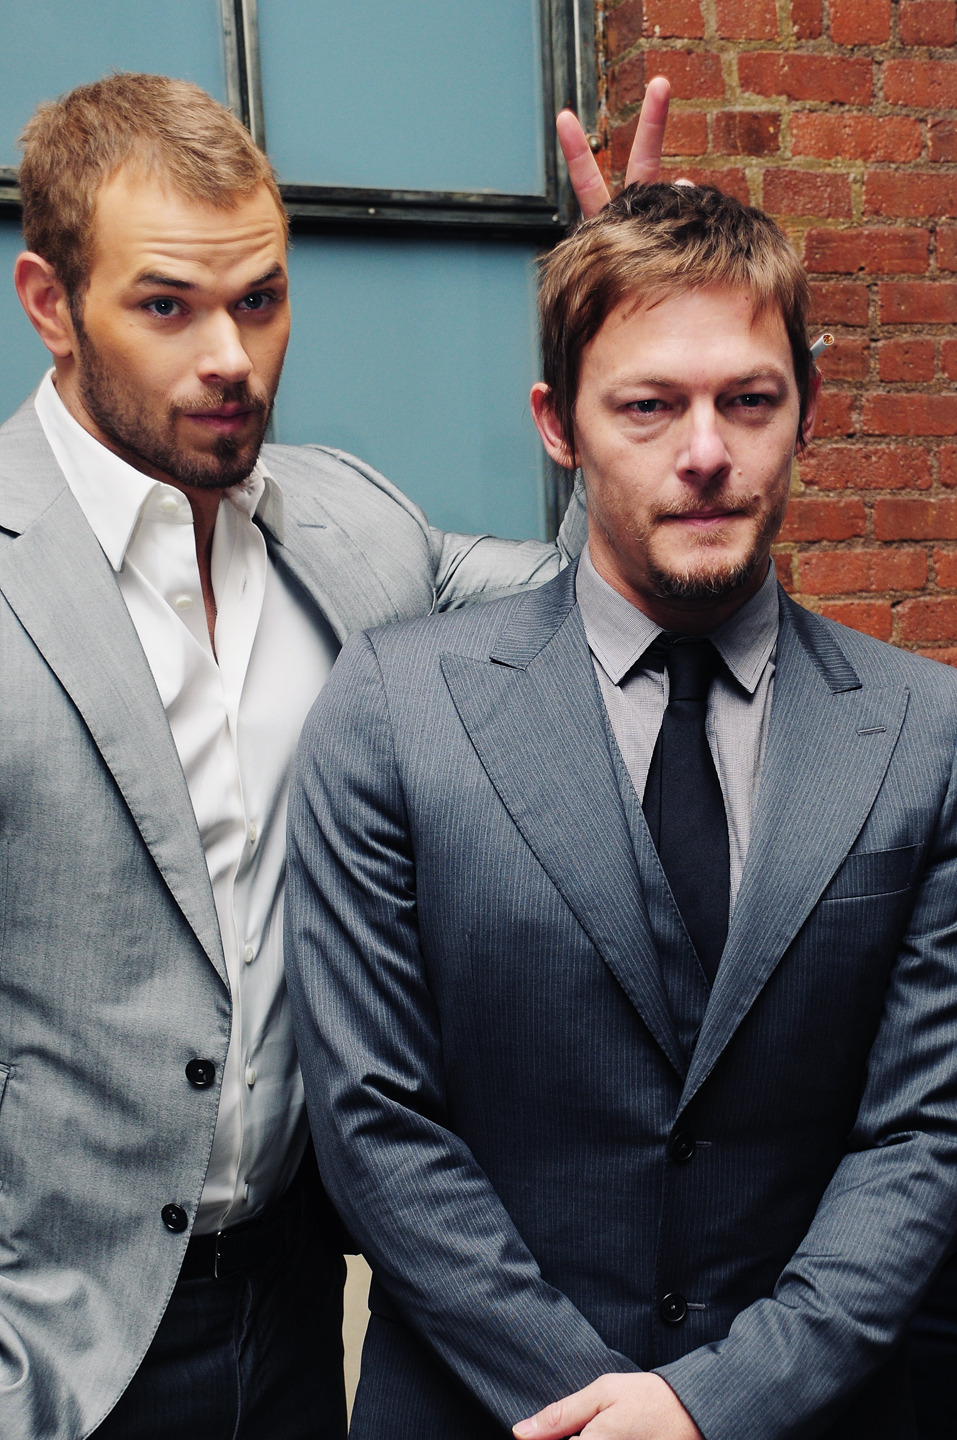 Kellan Lutz & Norman Reedus backstage @ the Simon Spurr show in Milk Studios